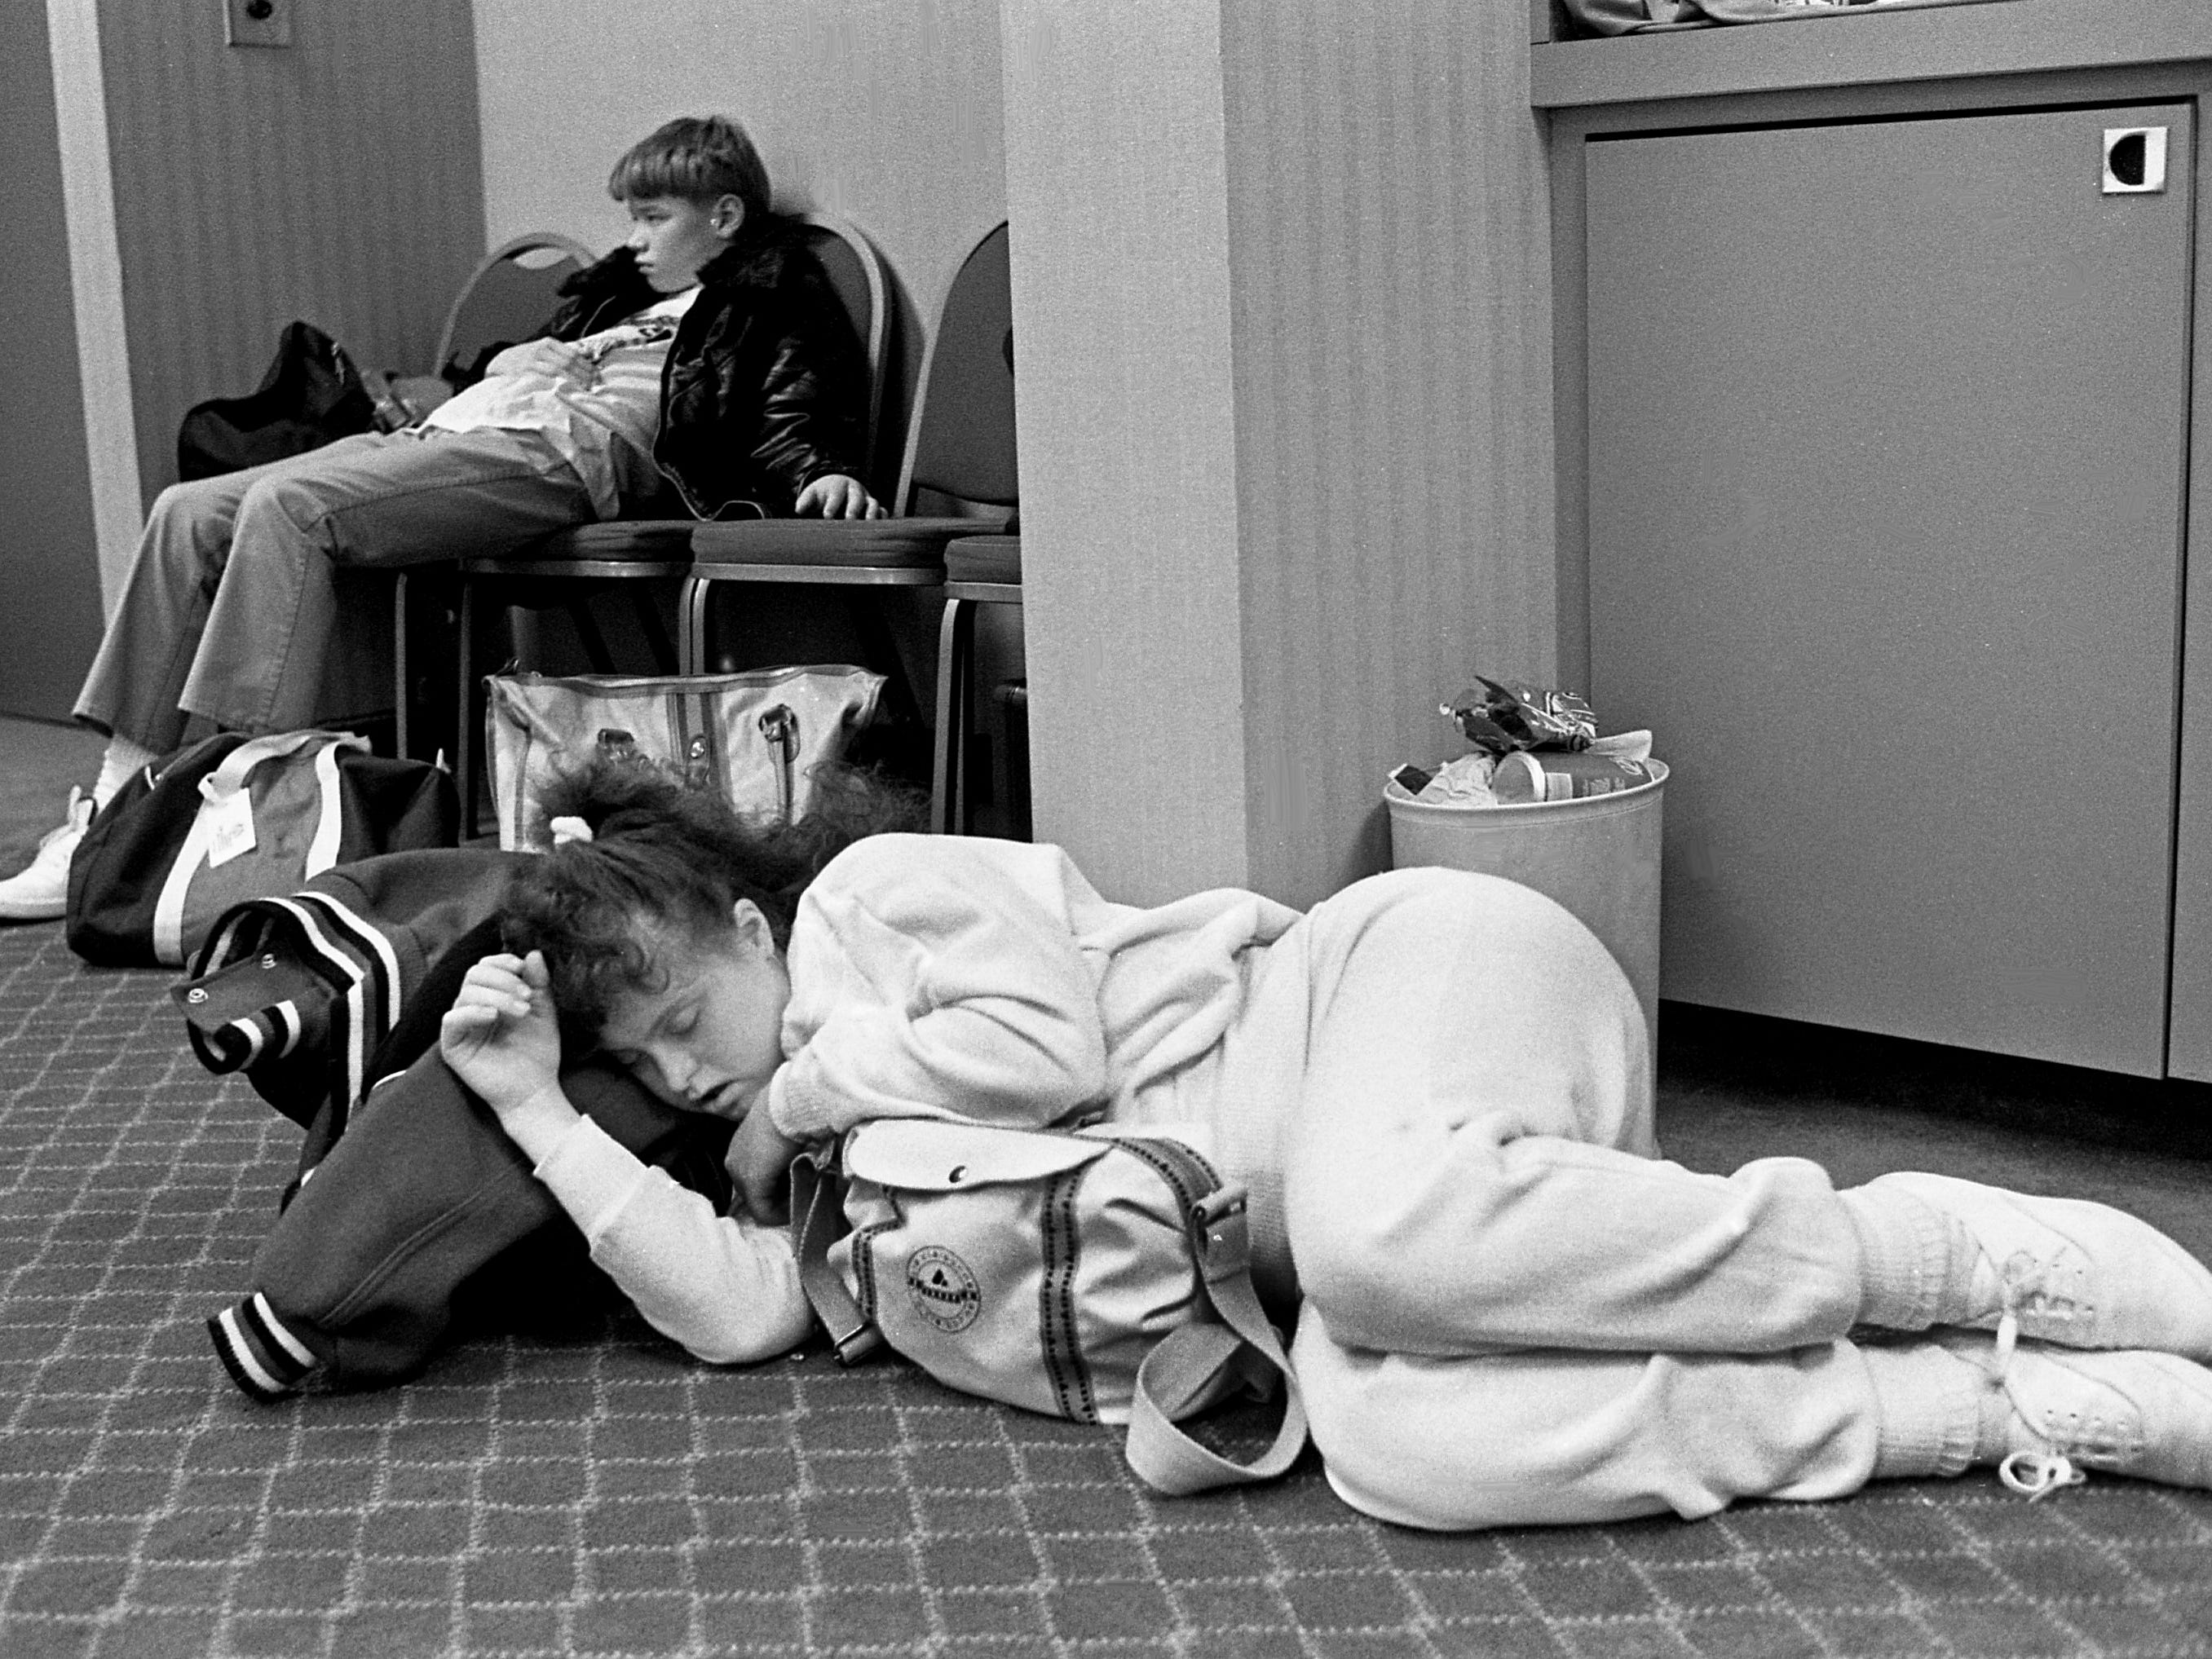 Figure skater Holly Blair, 18, foreground, and Michael Anderson, 12, both of Memphis, rest while waiting at Nashville Ramada Inn on March 31, 1989, for their ride to take them to the airport. They have a flight to Reno, Nevada, for the 1989 International Winter Special Olympics.